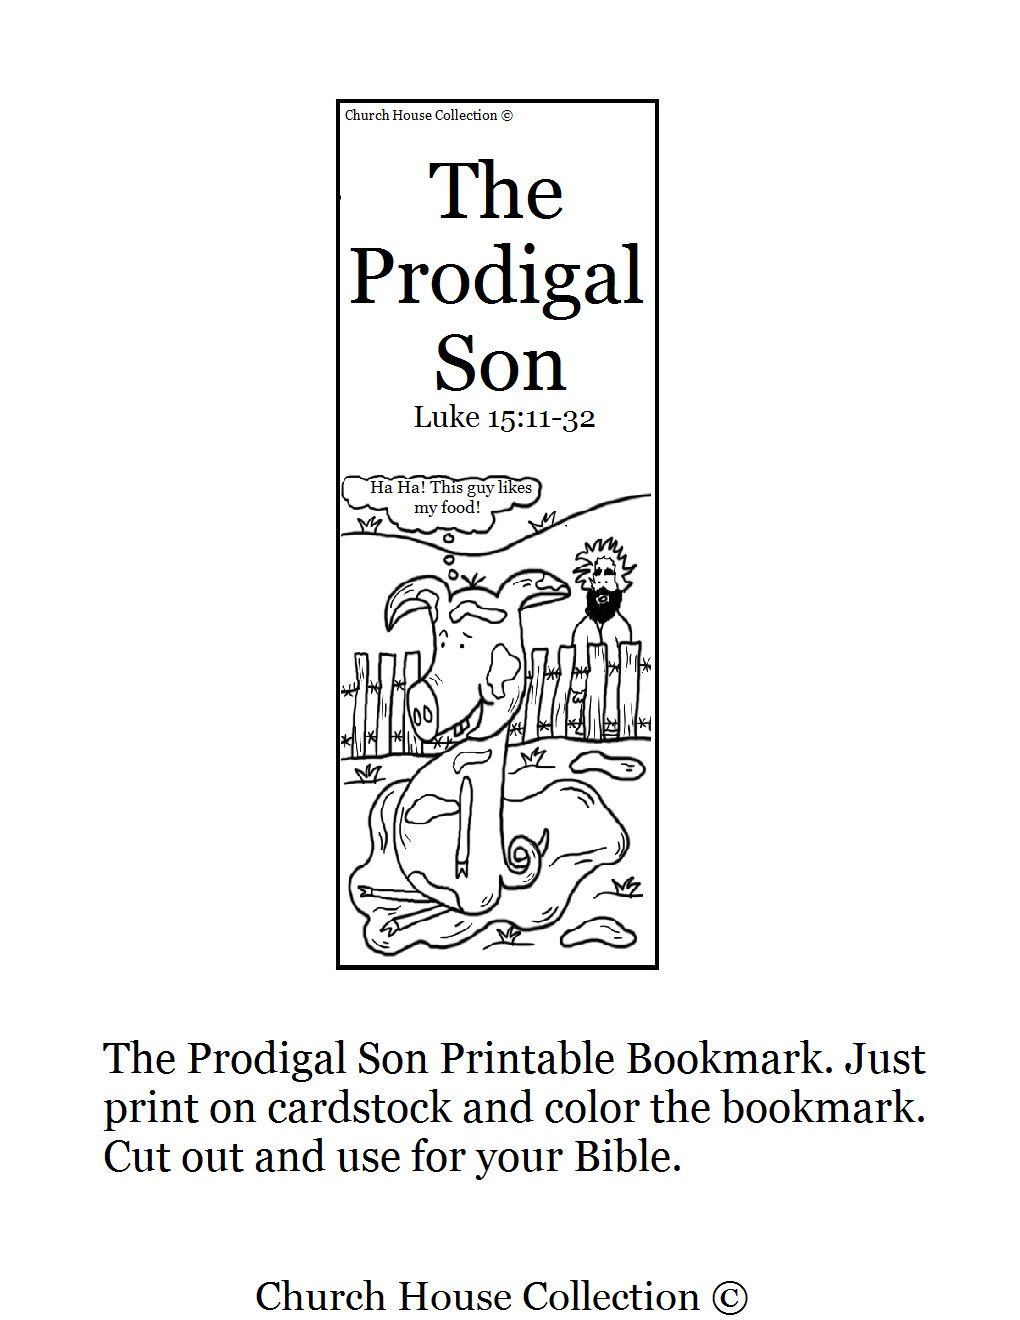 The Prodigal Son Bookmark Printable Maybe Just For Fun With